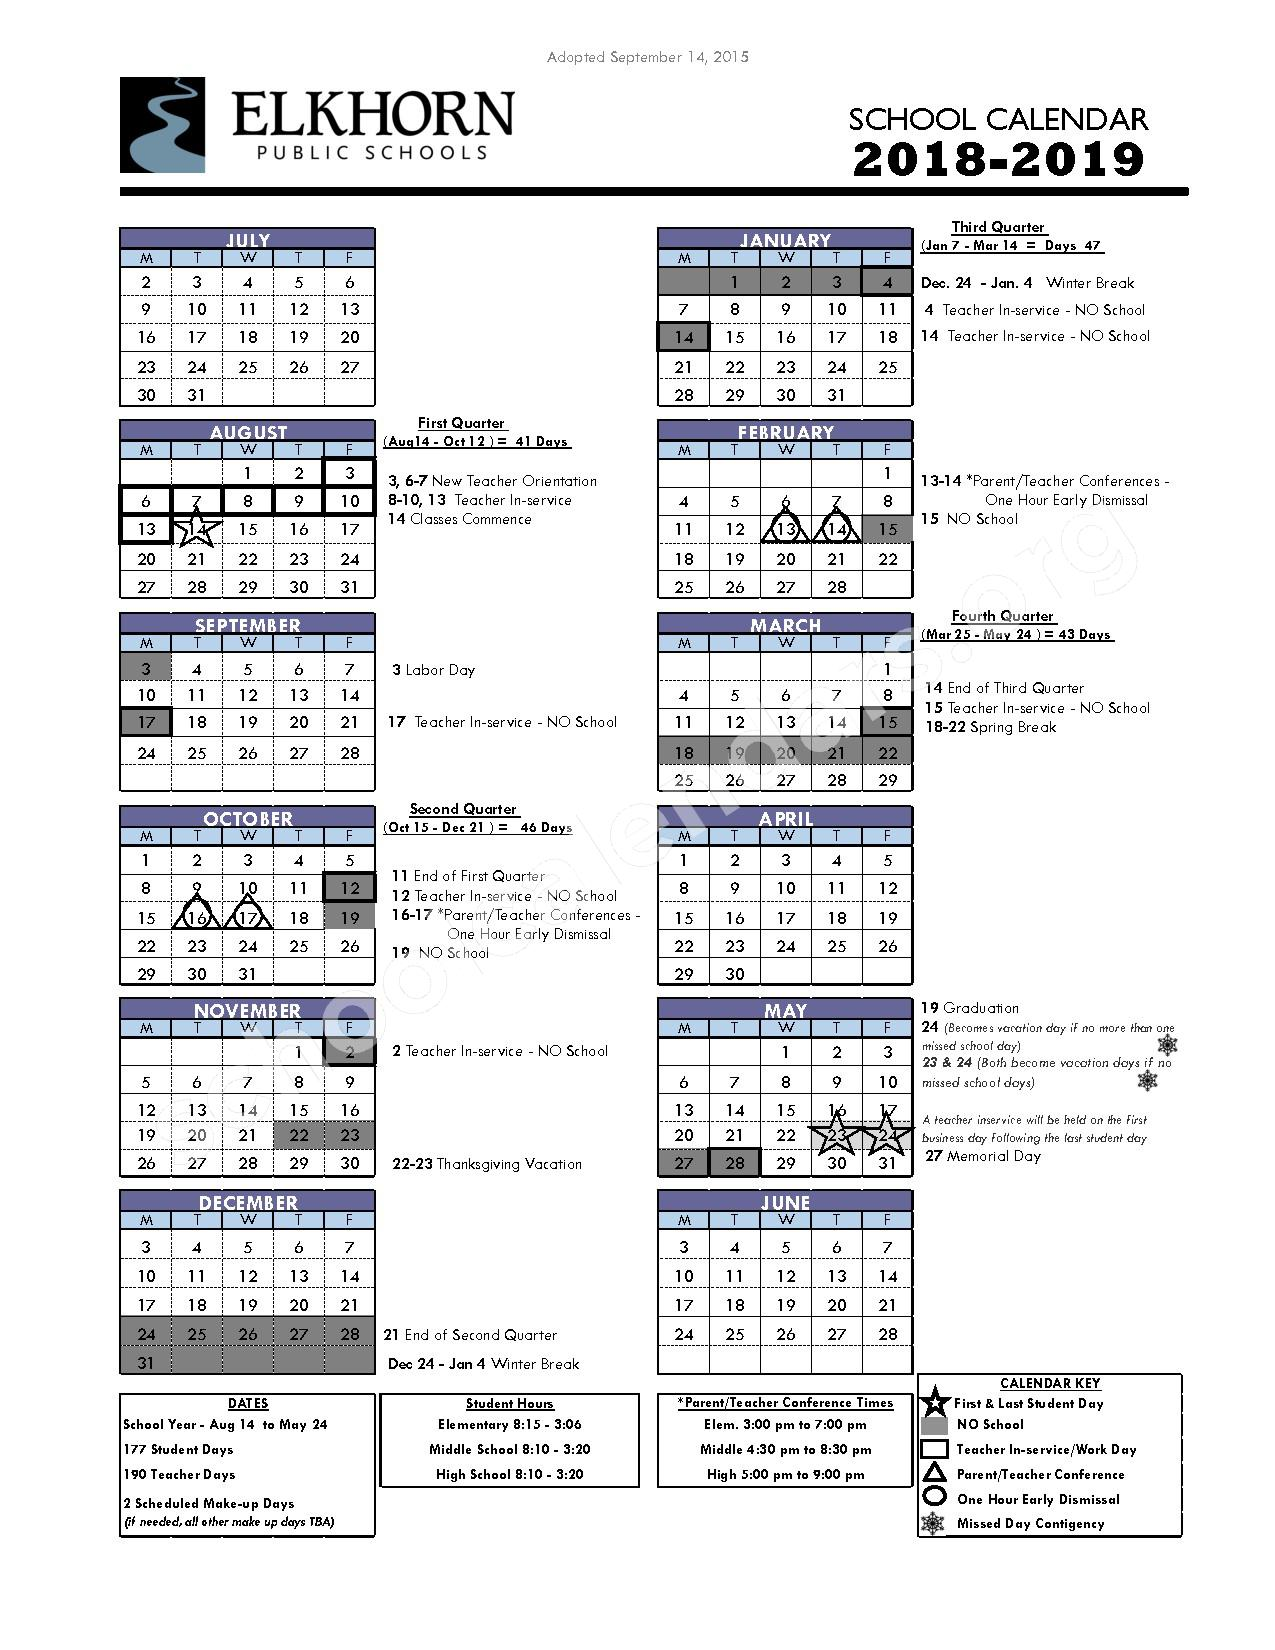 2018 - 2019 District Calendar – Fire Ridge Elementary School – page 1